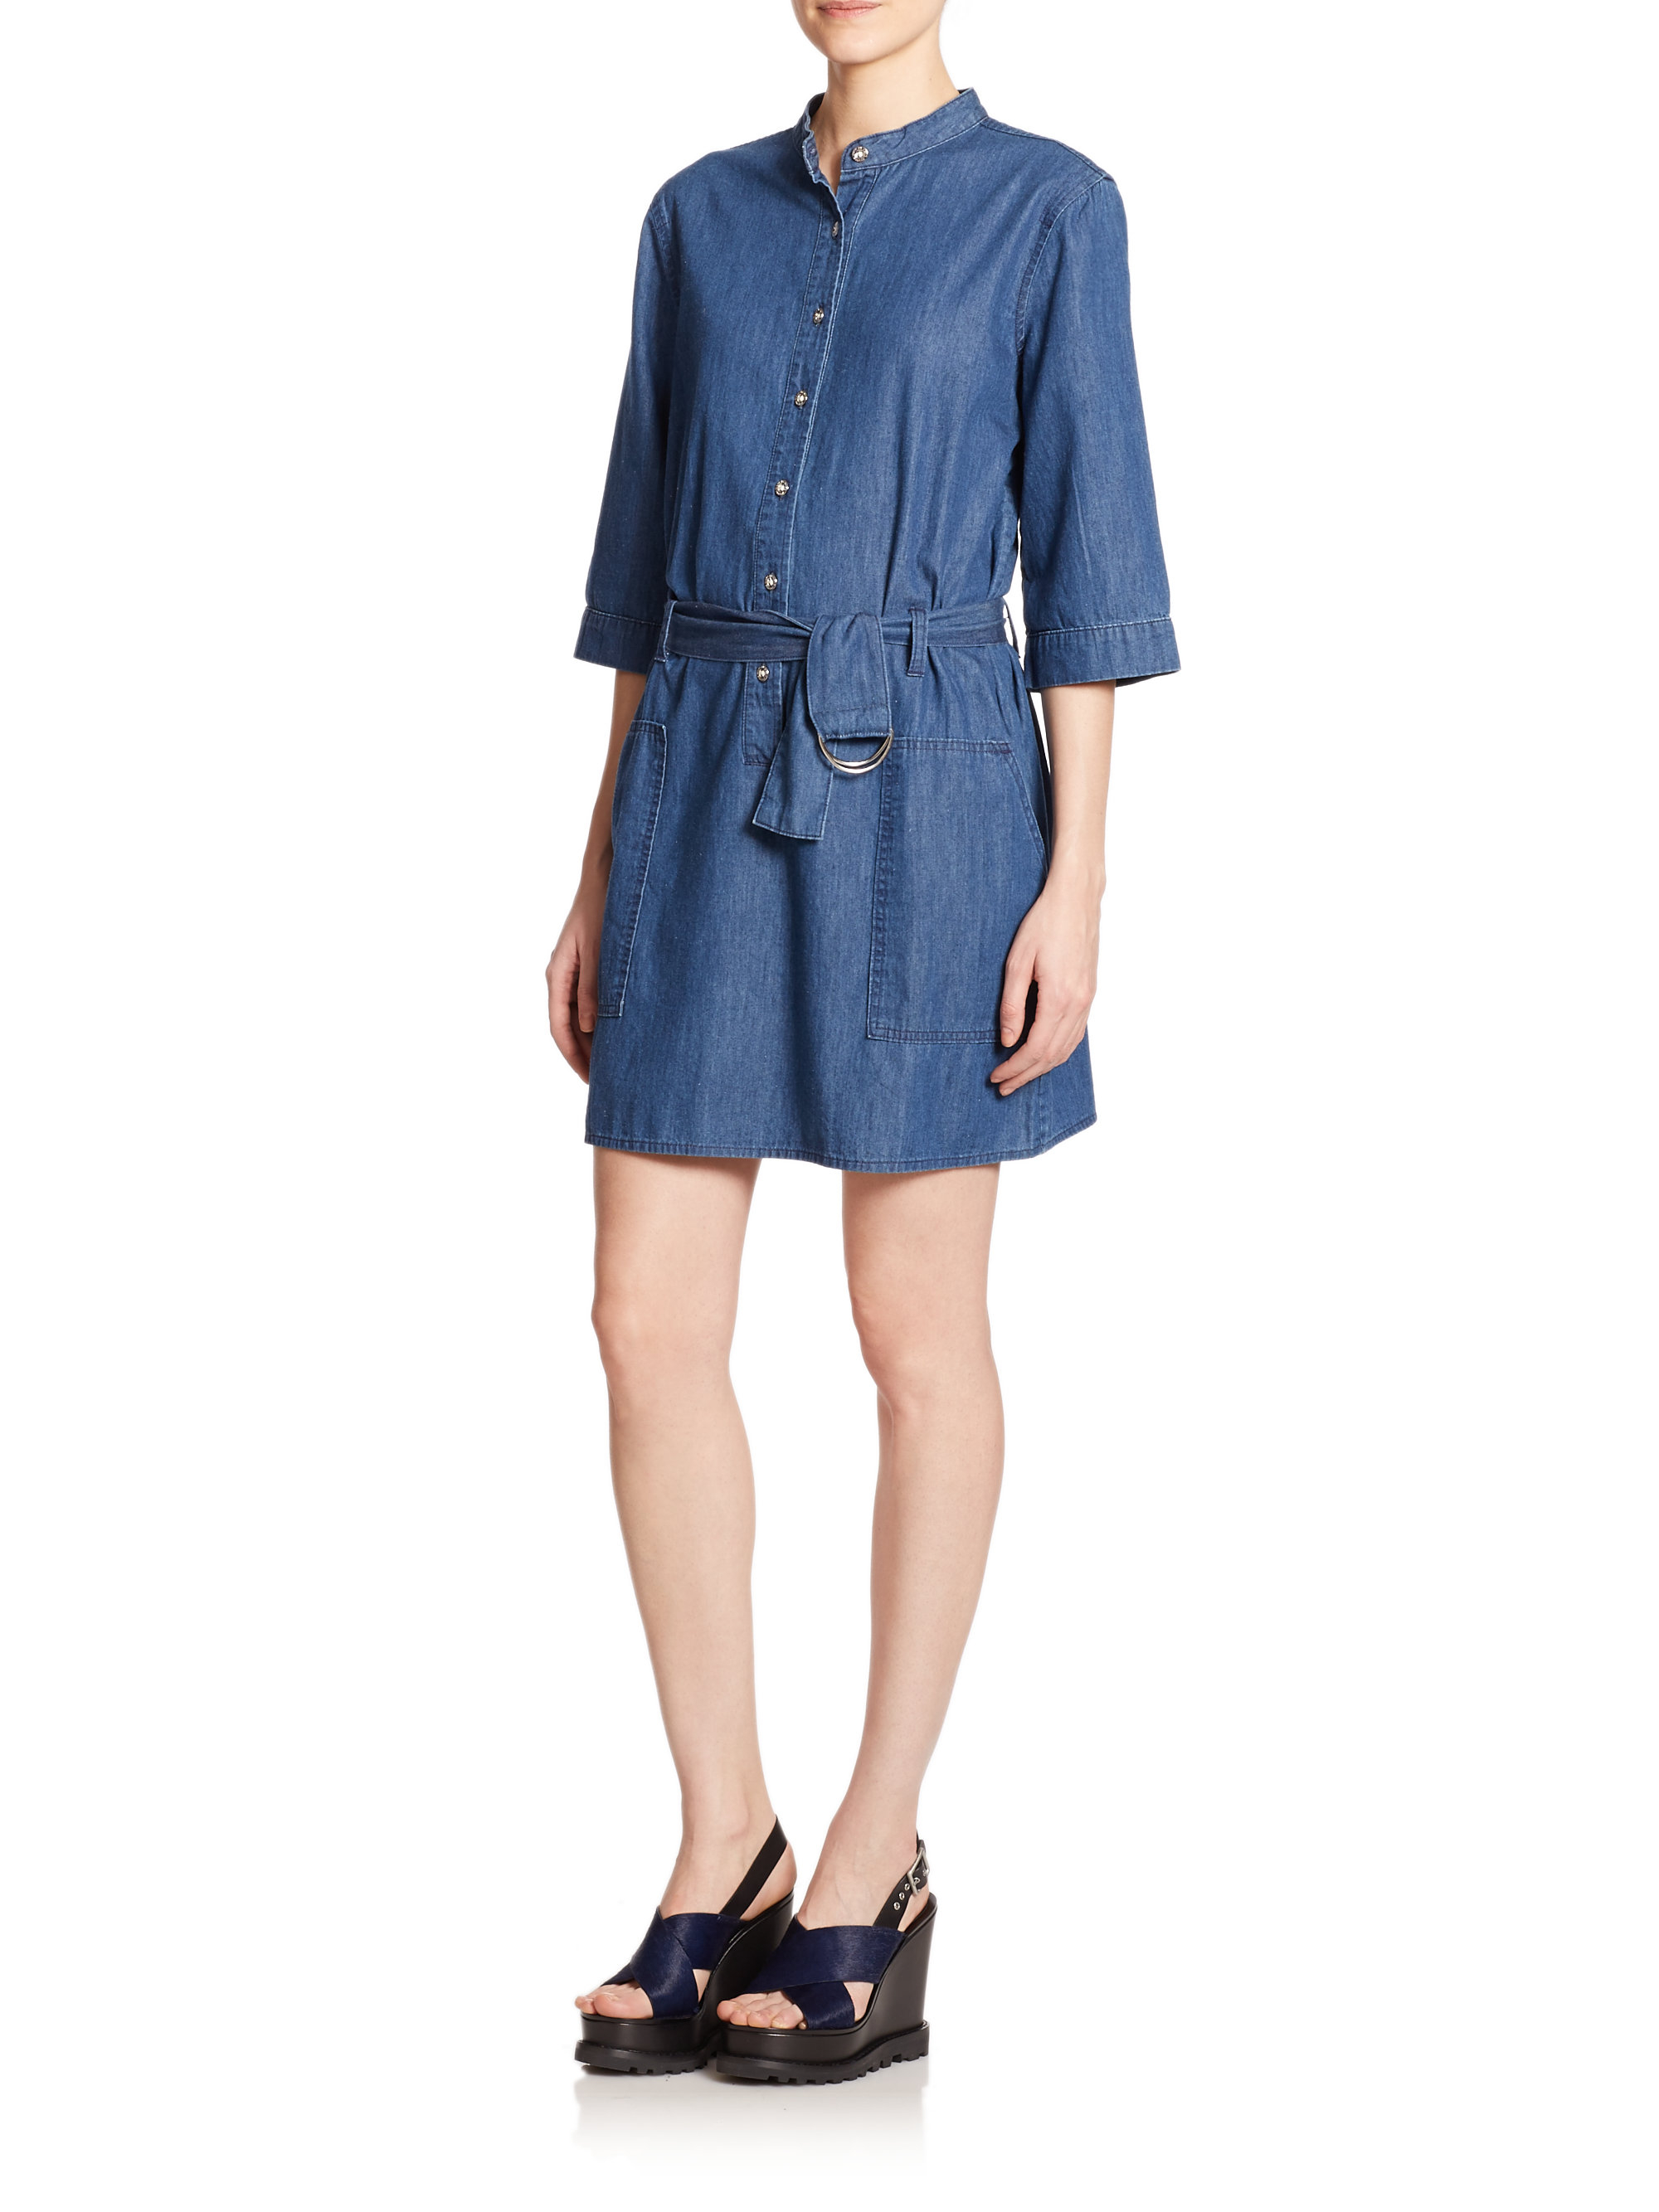 7663f34065 Lyst - Marc By Marc Jacobs Denim Shift Dress in Blue